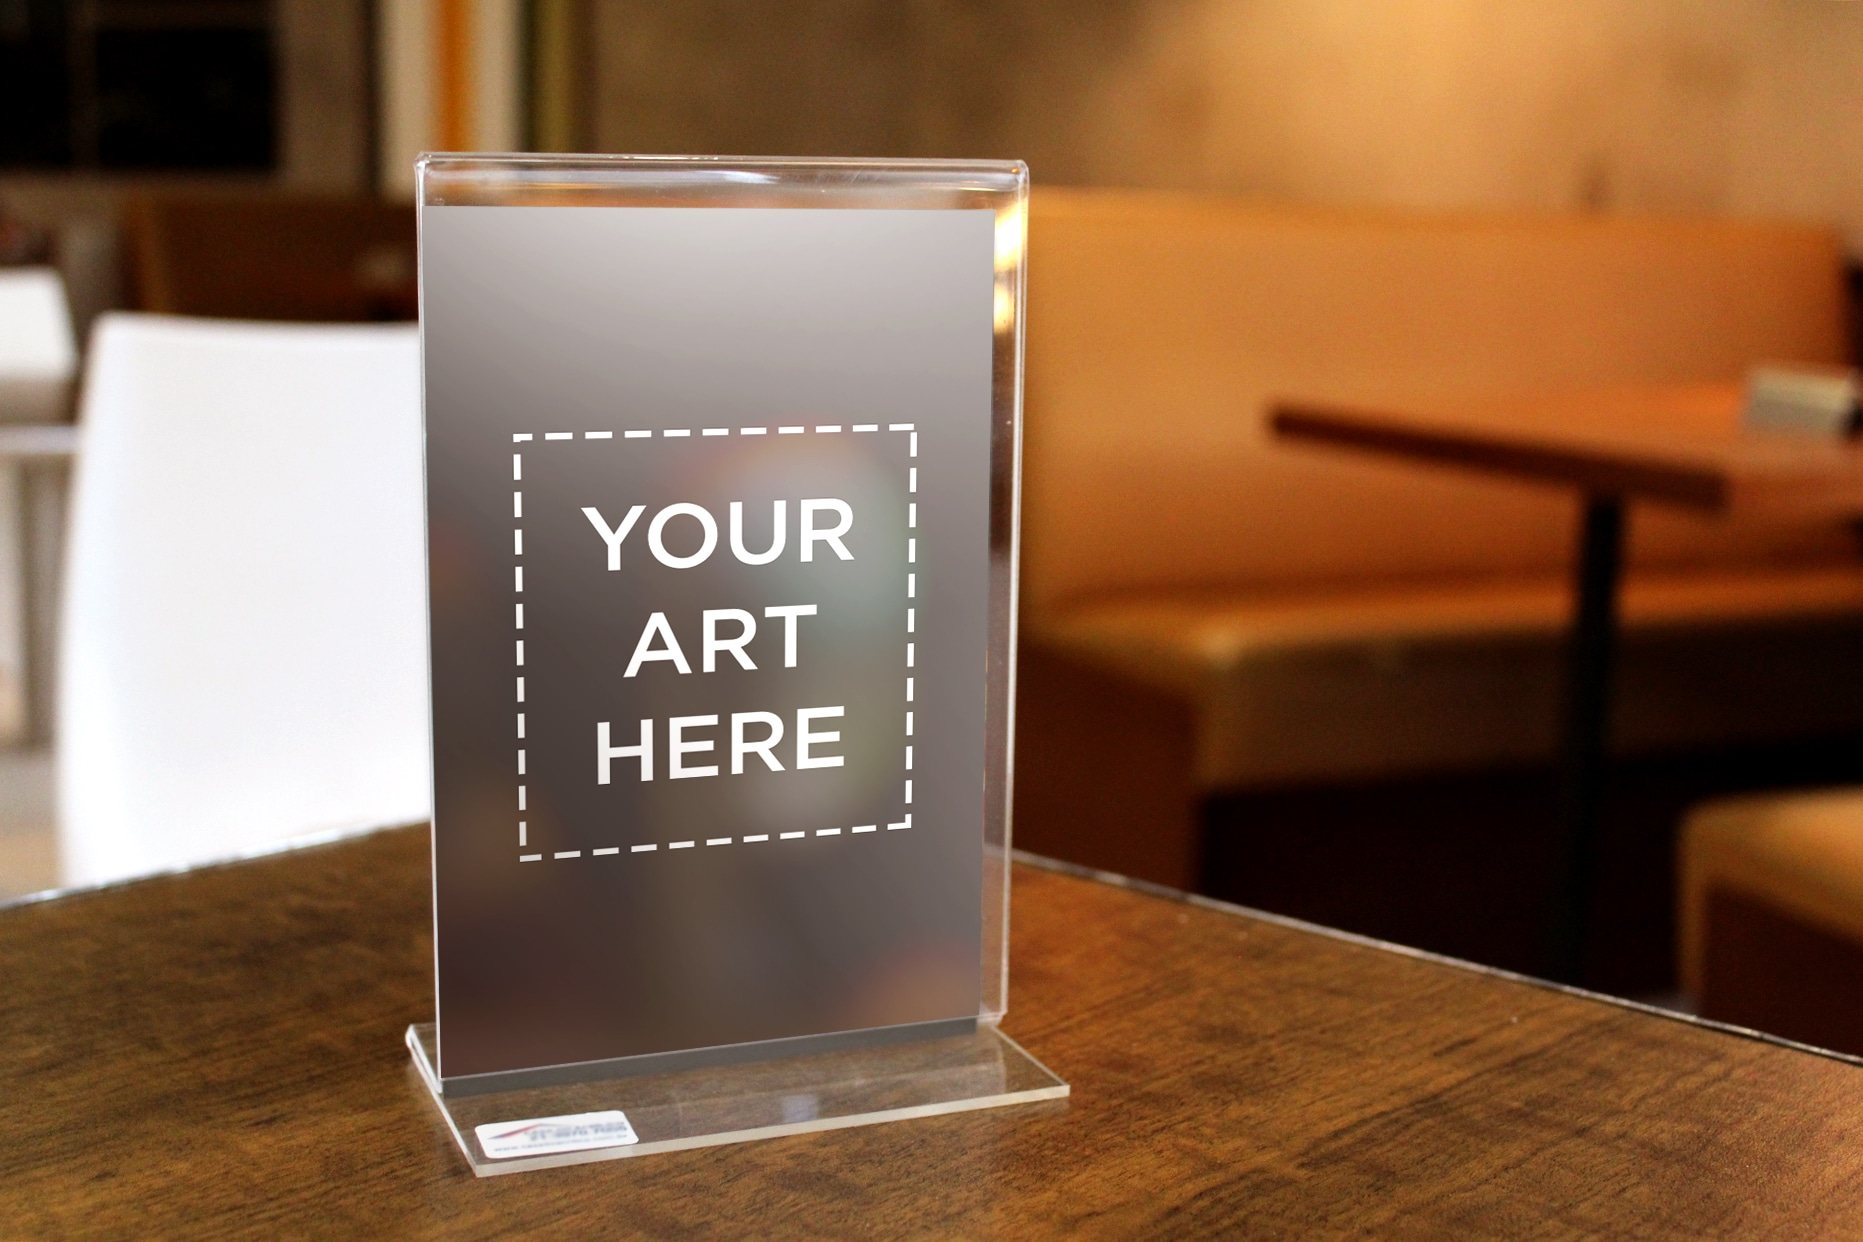 Download This Free Acrylic Table Standee In Psd Designhooks